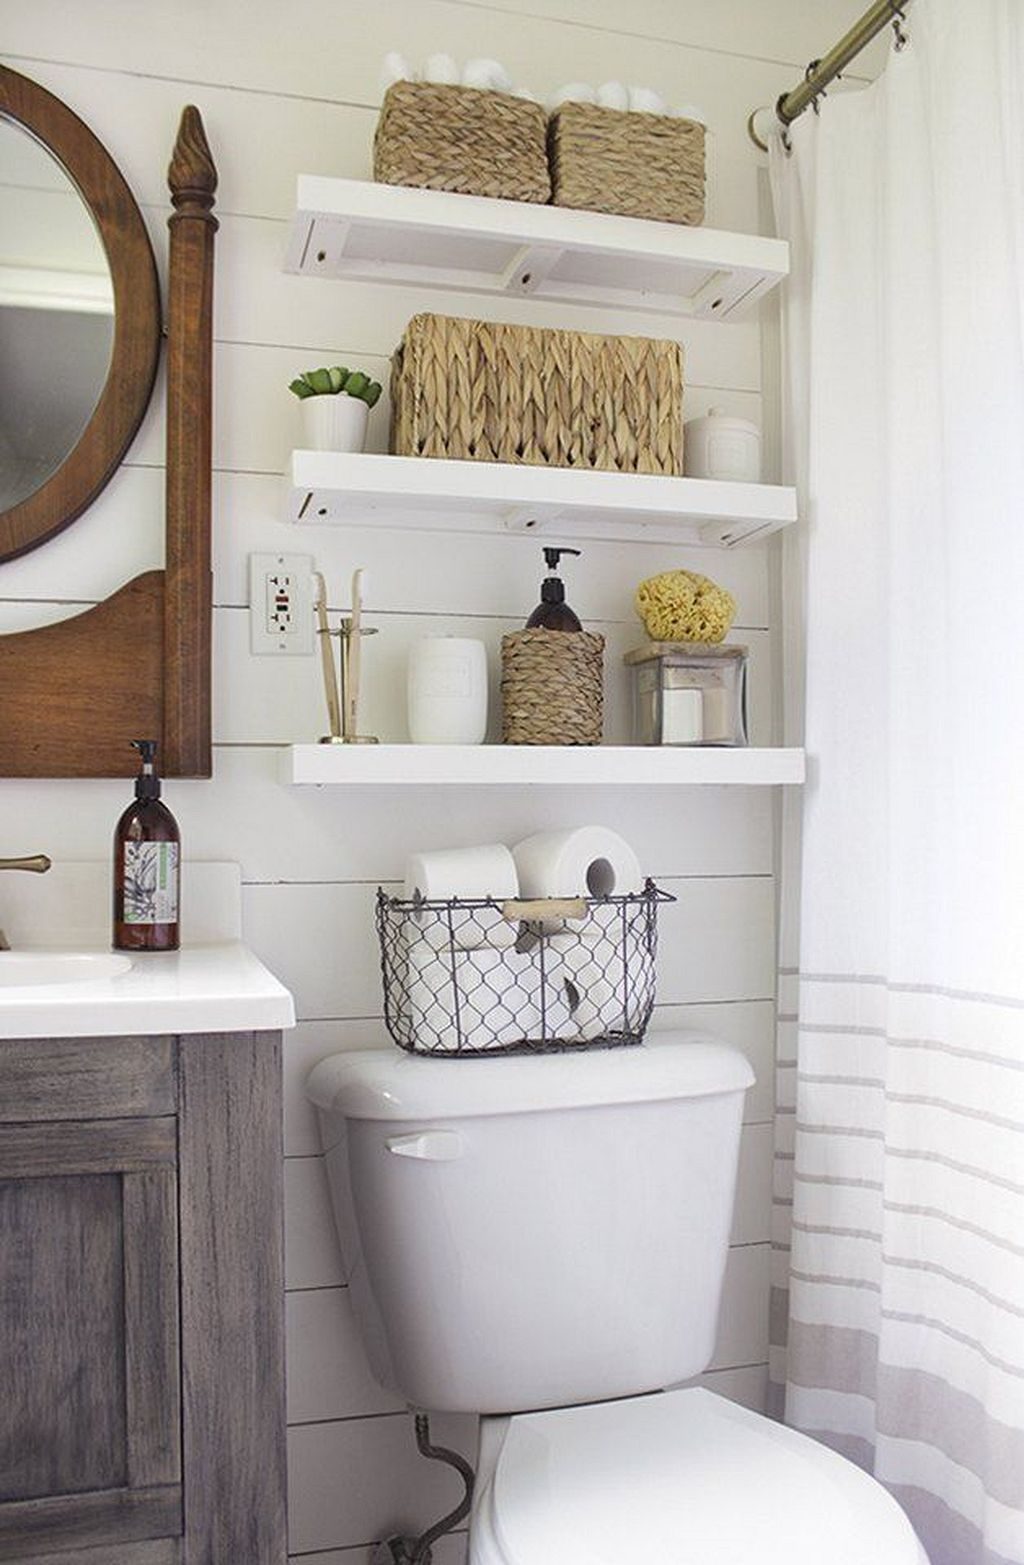 30+ Small Master Bathroom Makeover Ideas Low-Budget ...